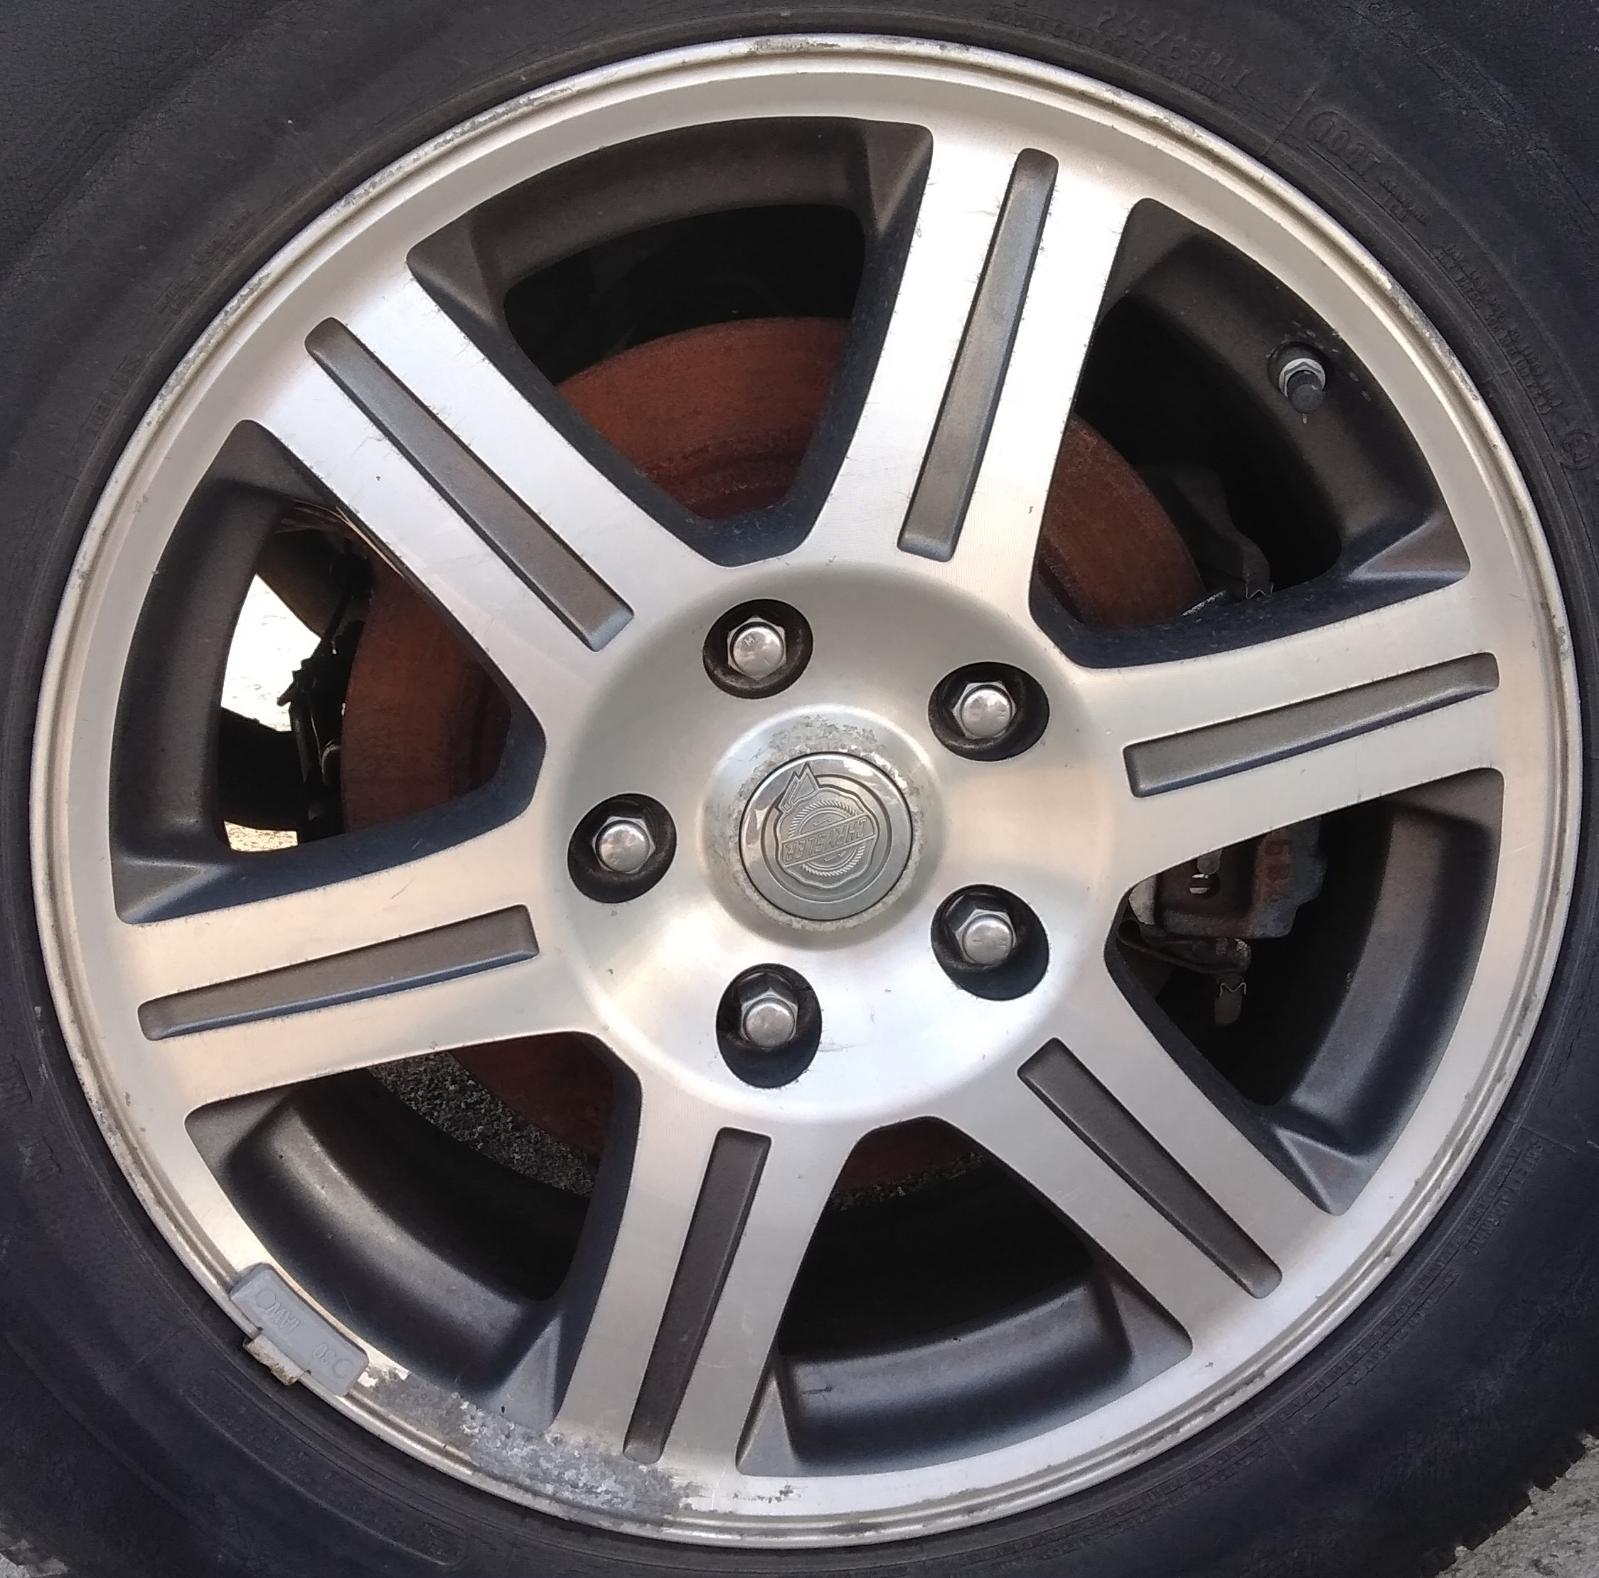 Chrysler Pacifica Rims For Sale: Used Wheel For Sale For A 2008 Chrysler Pacifica